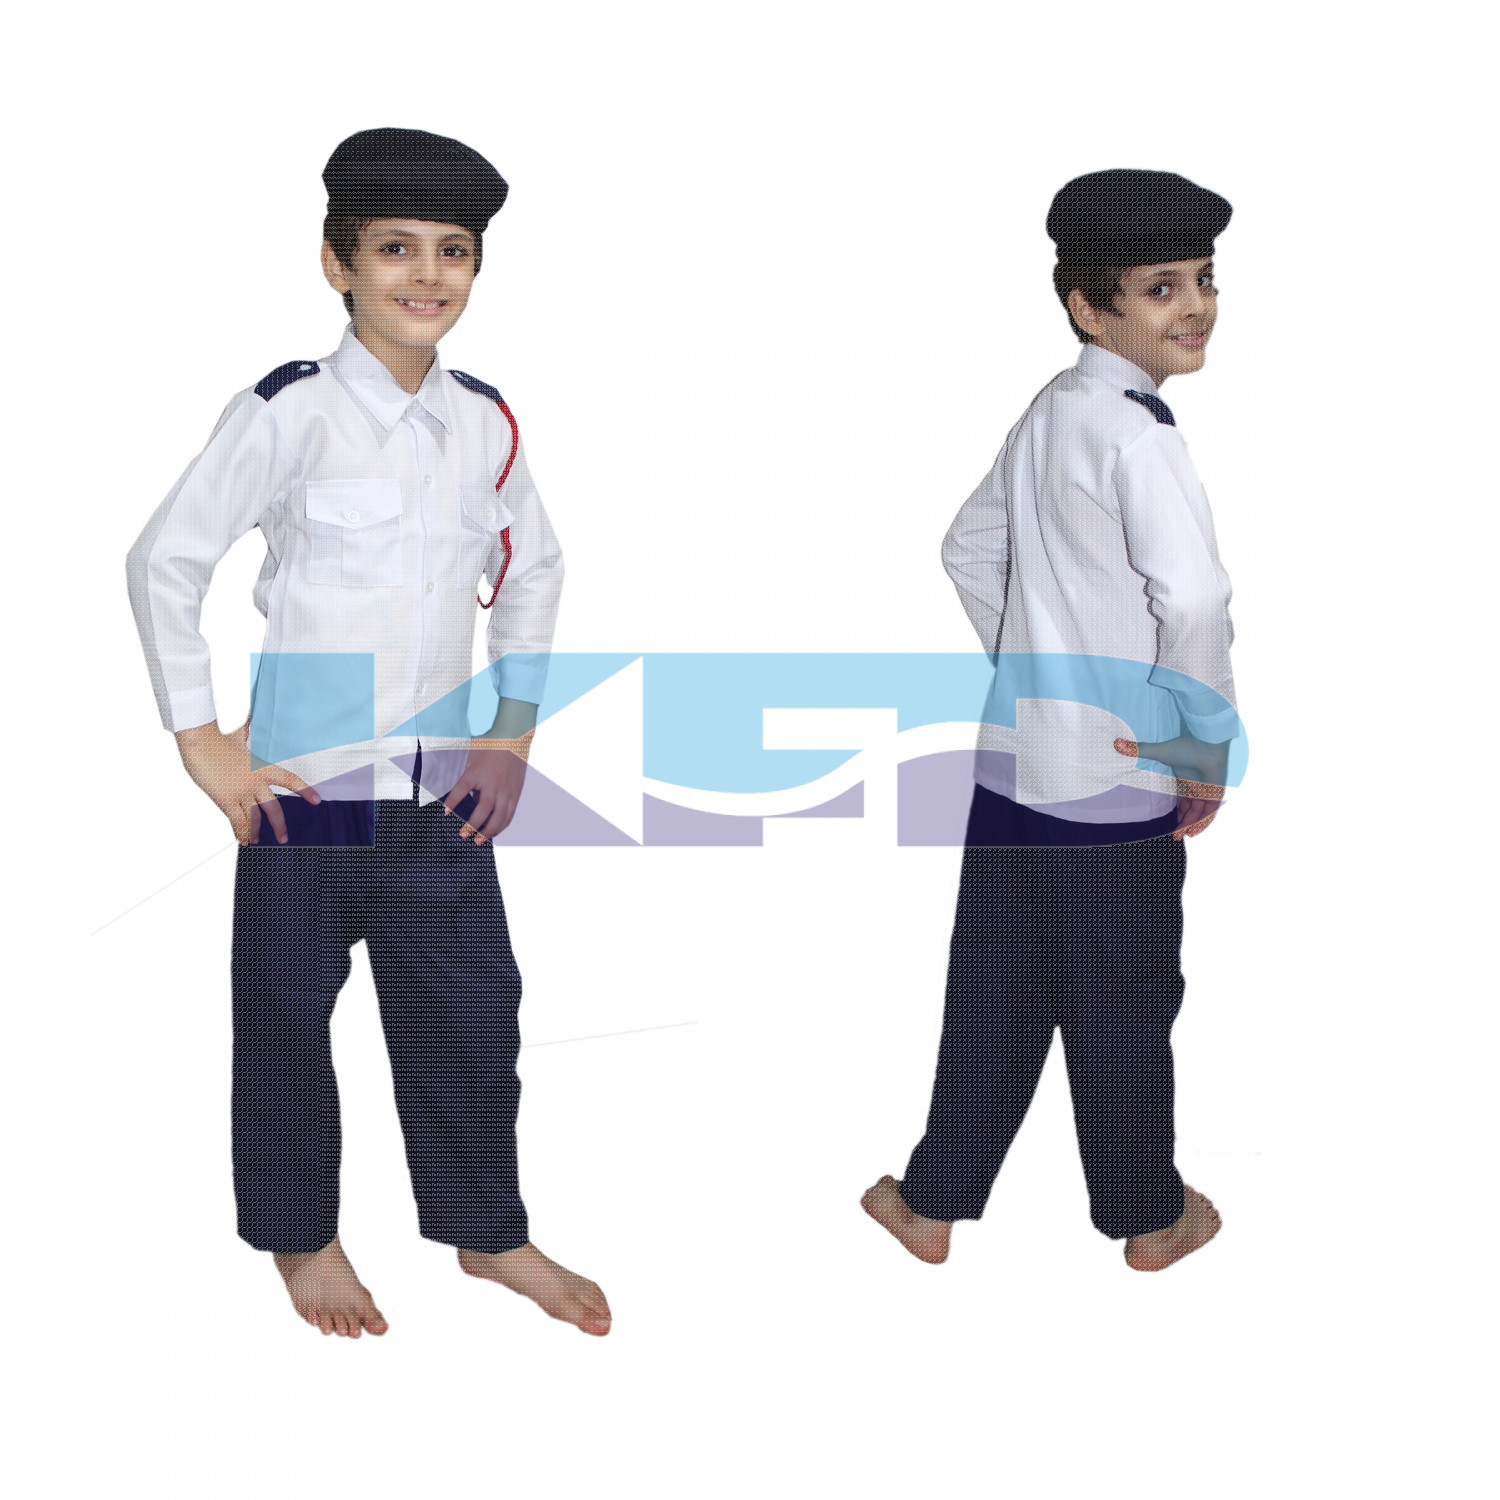 Trafic Police Fancy Dress For Kids,Our Helper Costume For Annual Function/Theme Party/Competition/Stage Shows Dress